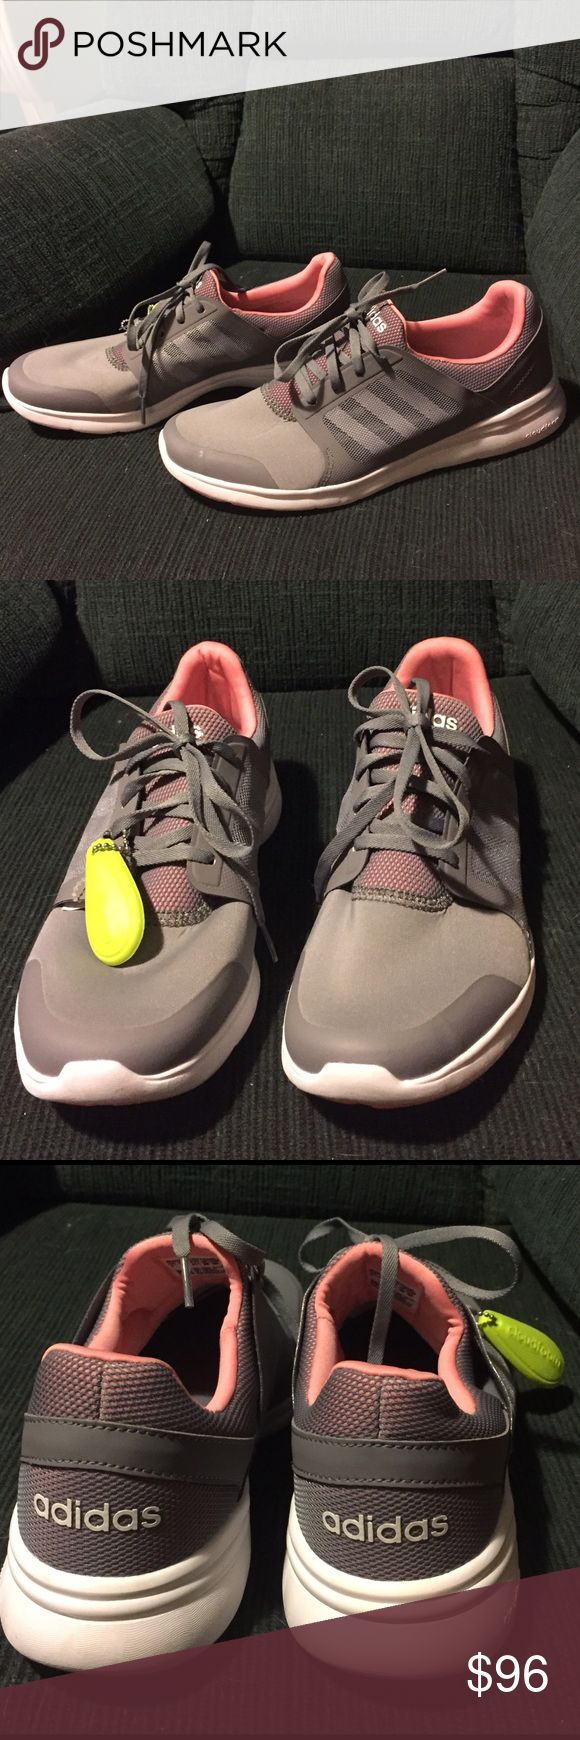 BRAND NEW ADIDIAS MEMORY FOAM SNEAKERS Excellent condition. Never worn. NWOT Adidas Shoes Sneakers